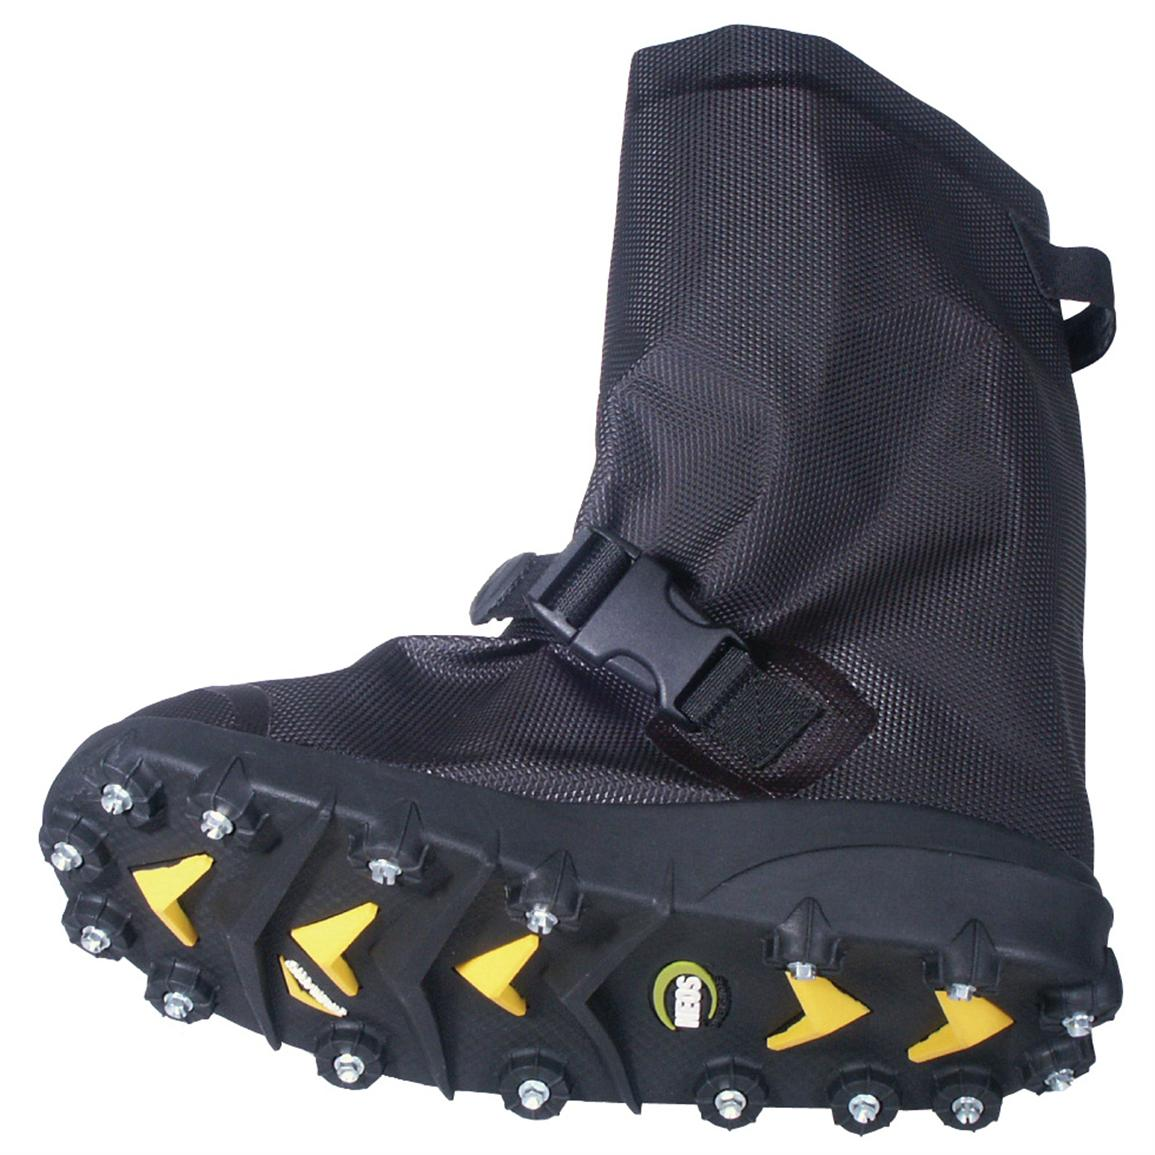 32 North STABILicers Overshoe